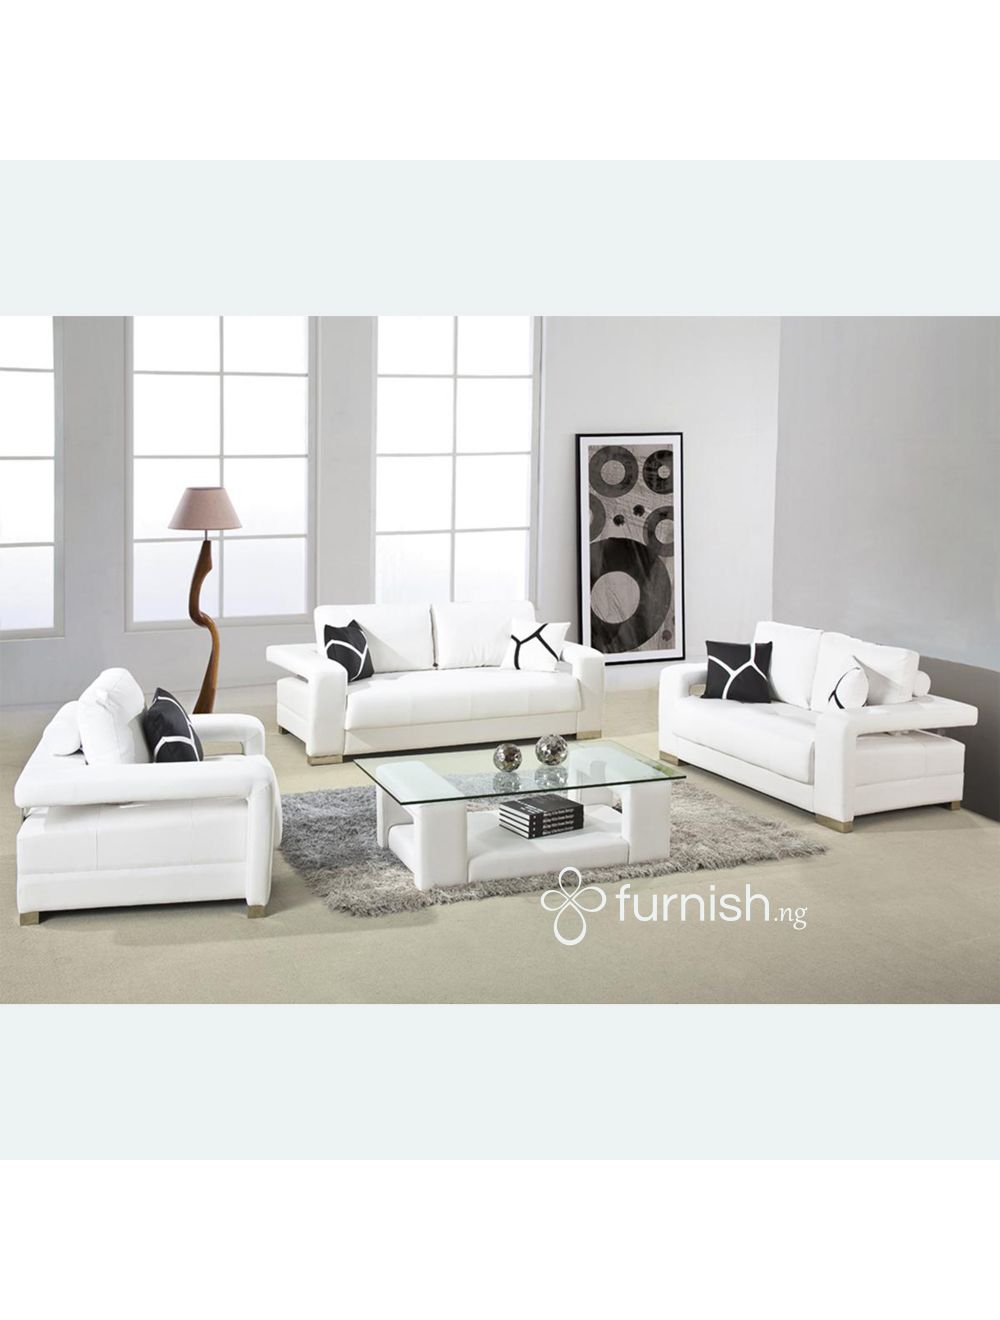 Buy The Chimdiuto 4 Piece Modern Living Room Set 5 Seater Leather within 14 Some of the Coolest Designs of How to Improve Buy Living Room Set